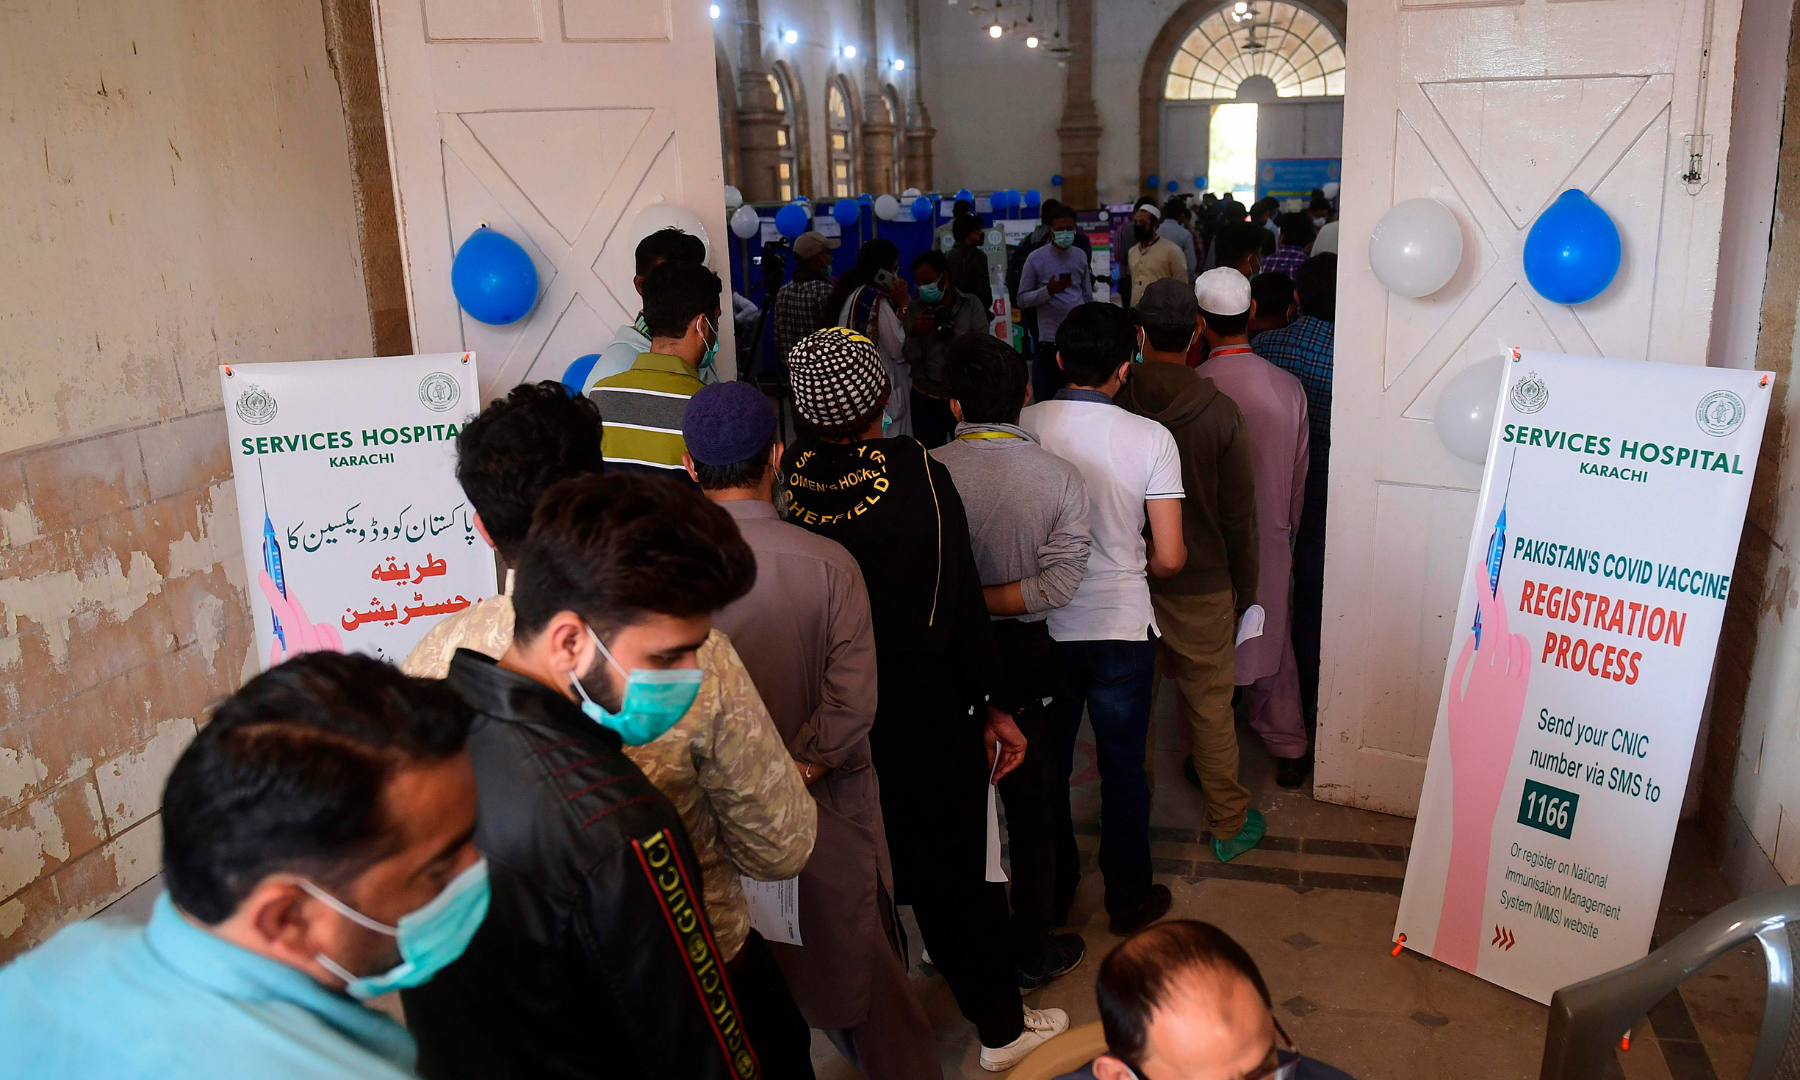 Health workers stand in a queue for their registration before receiving a dose of the Chinese-made Sinopharm Covid-19 vaccine, at a vaccination centre in Karachi. — AFP